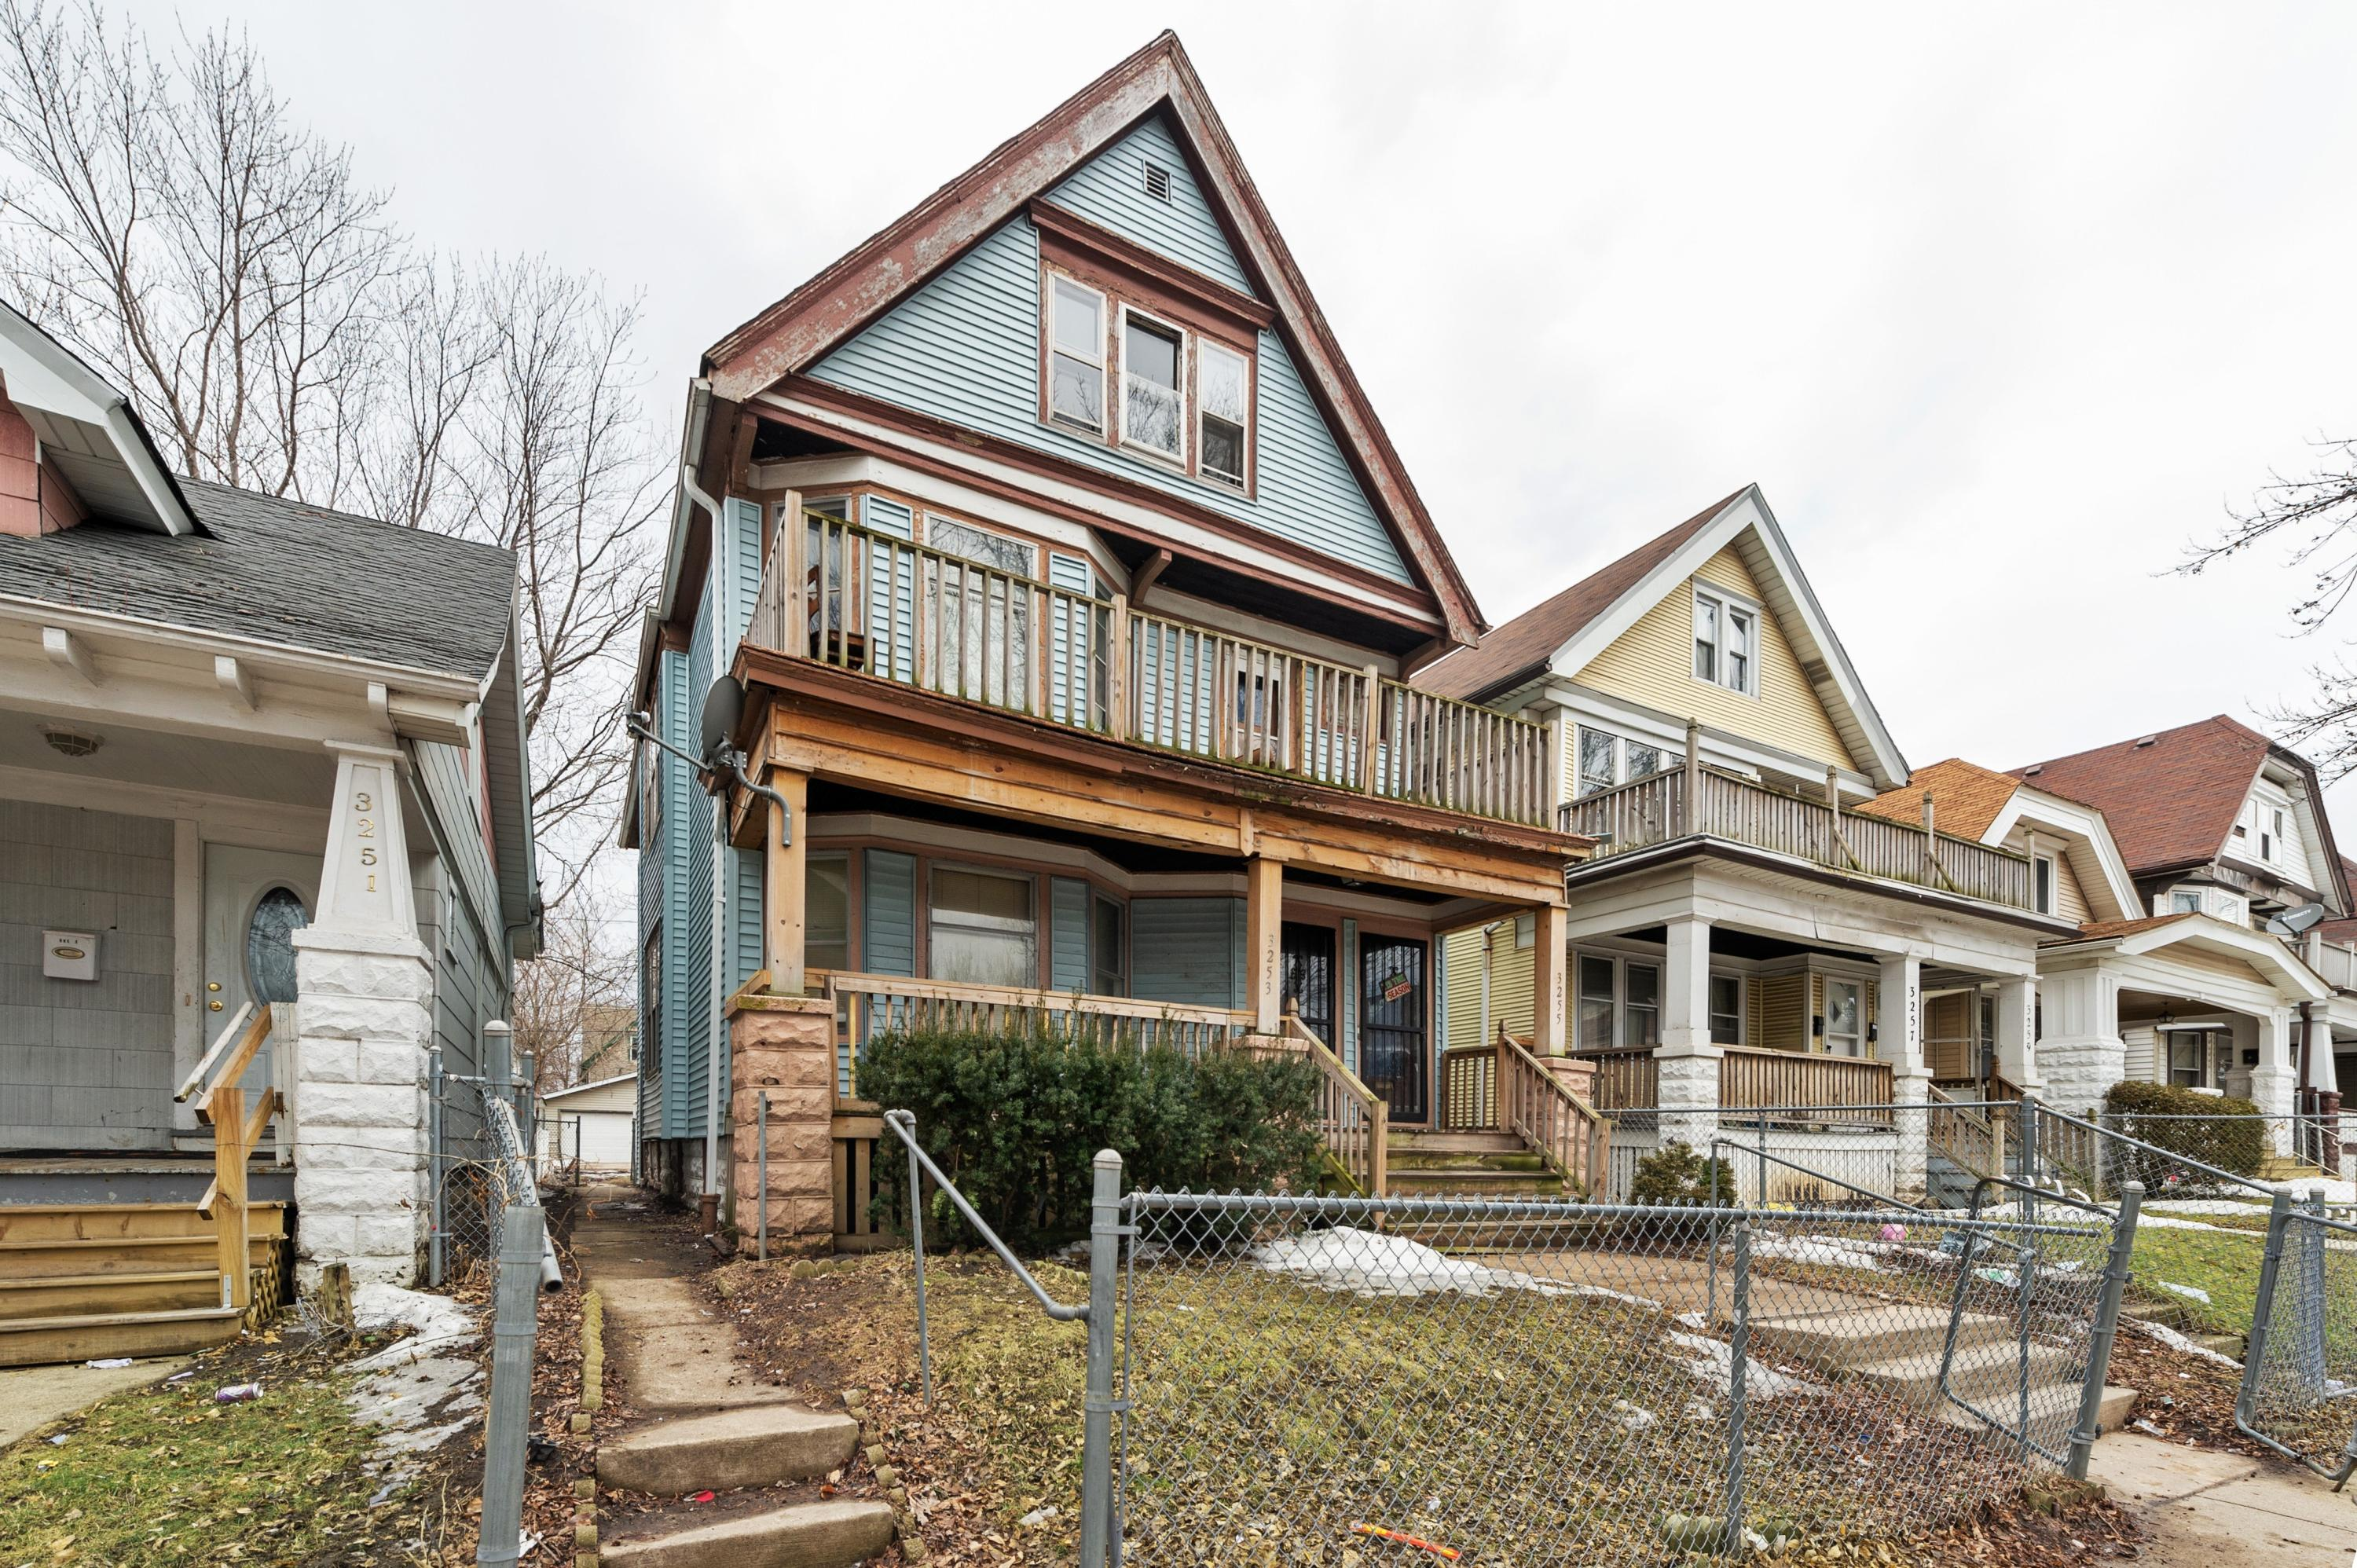 3253 28th St, Milwaukee, Wisconsin 53216, 2 Bedrooms Bedrooms, 4 Rooms Rooms,1 BathroomBathrooms,Two-Family,For Sale,28th St,1,1626687